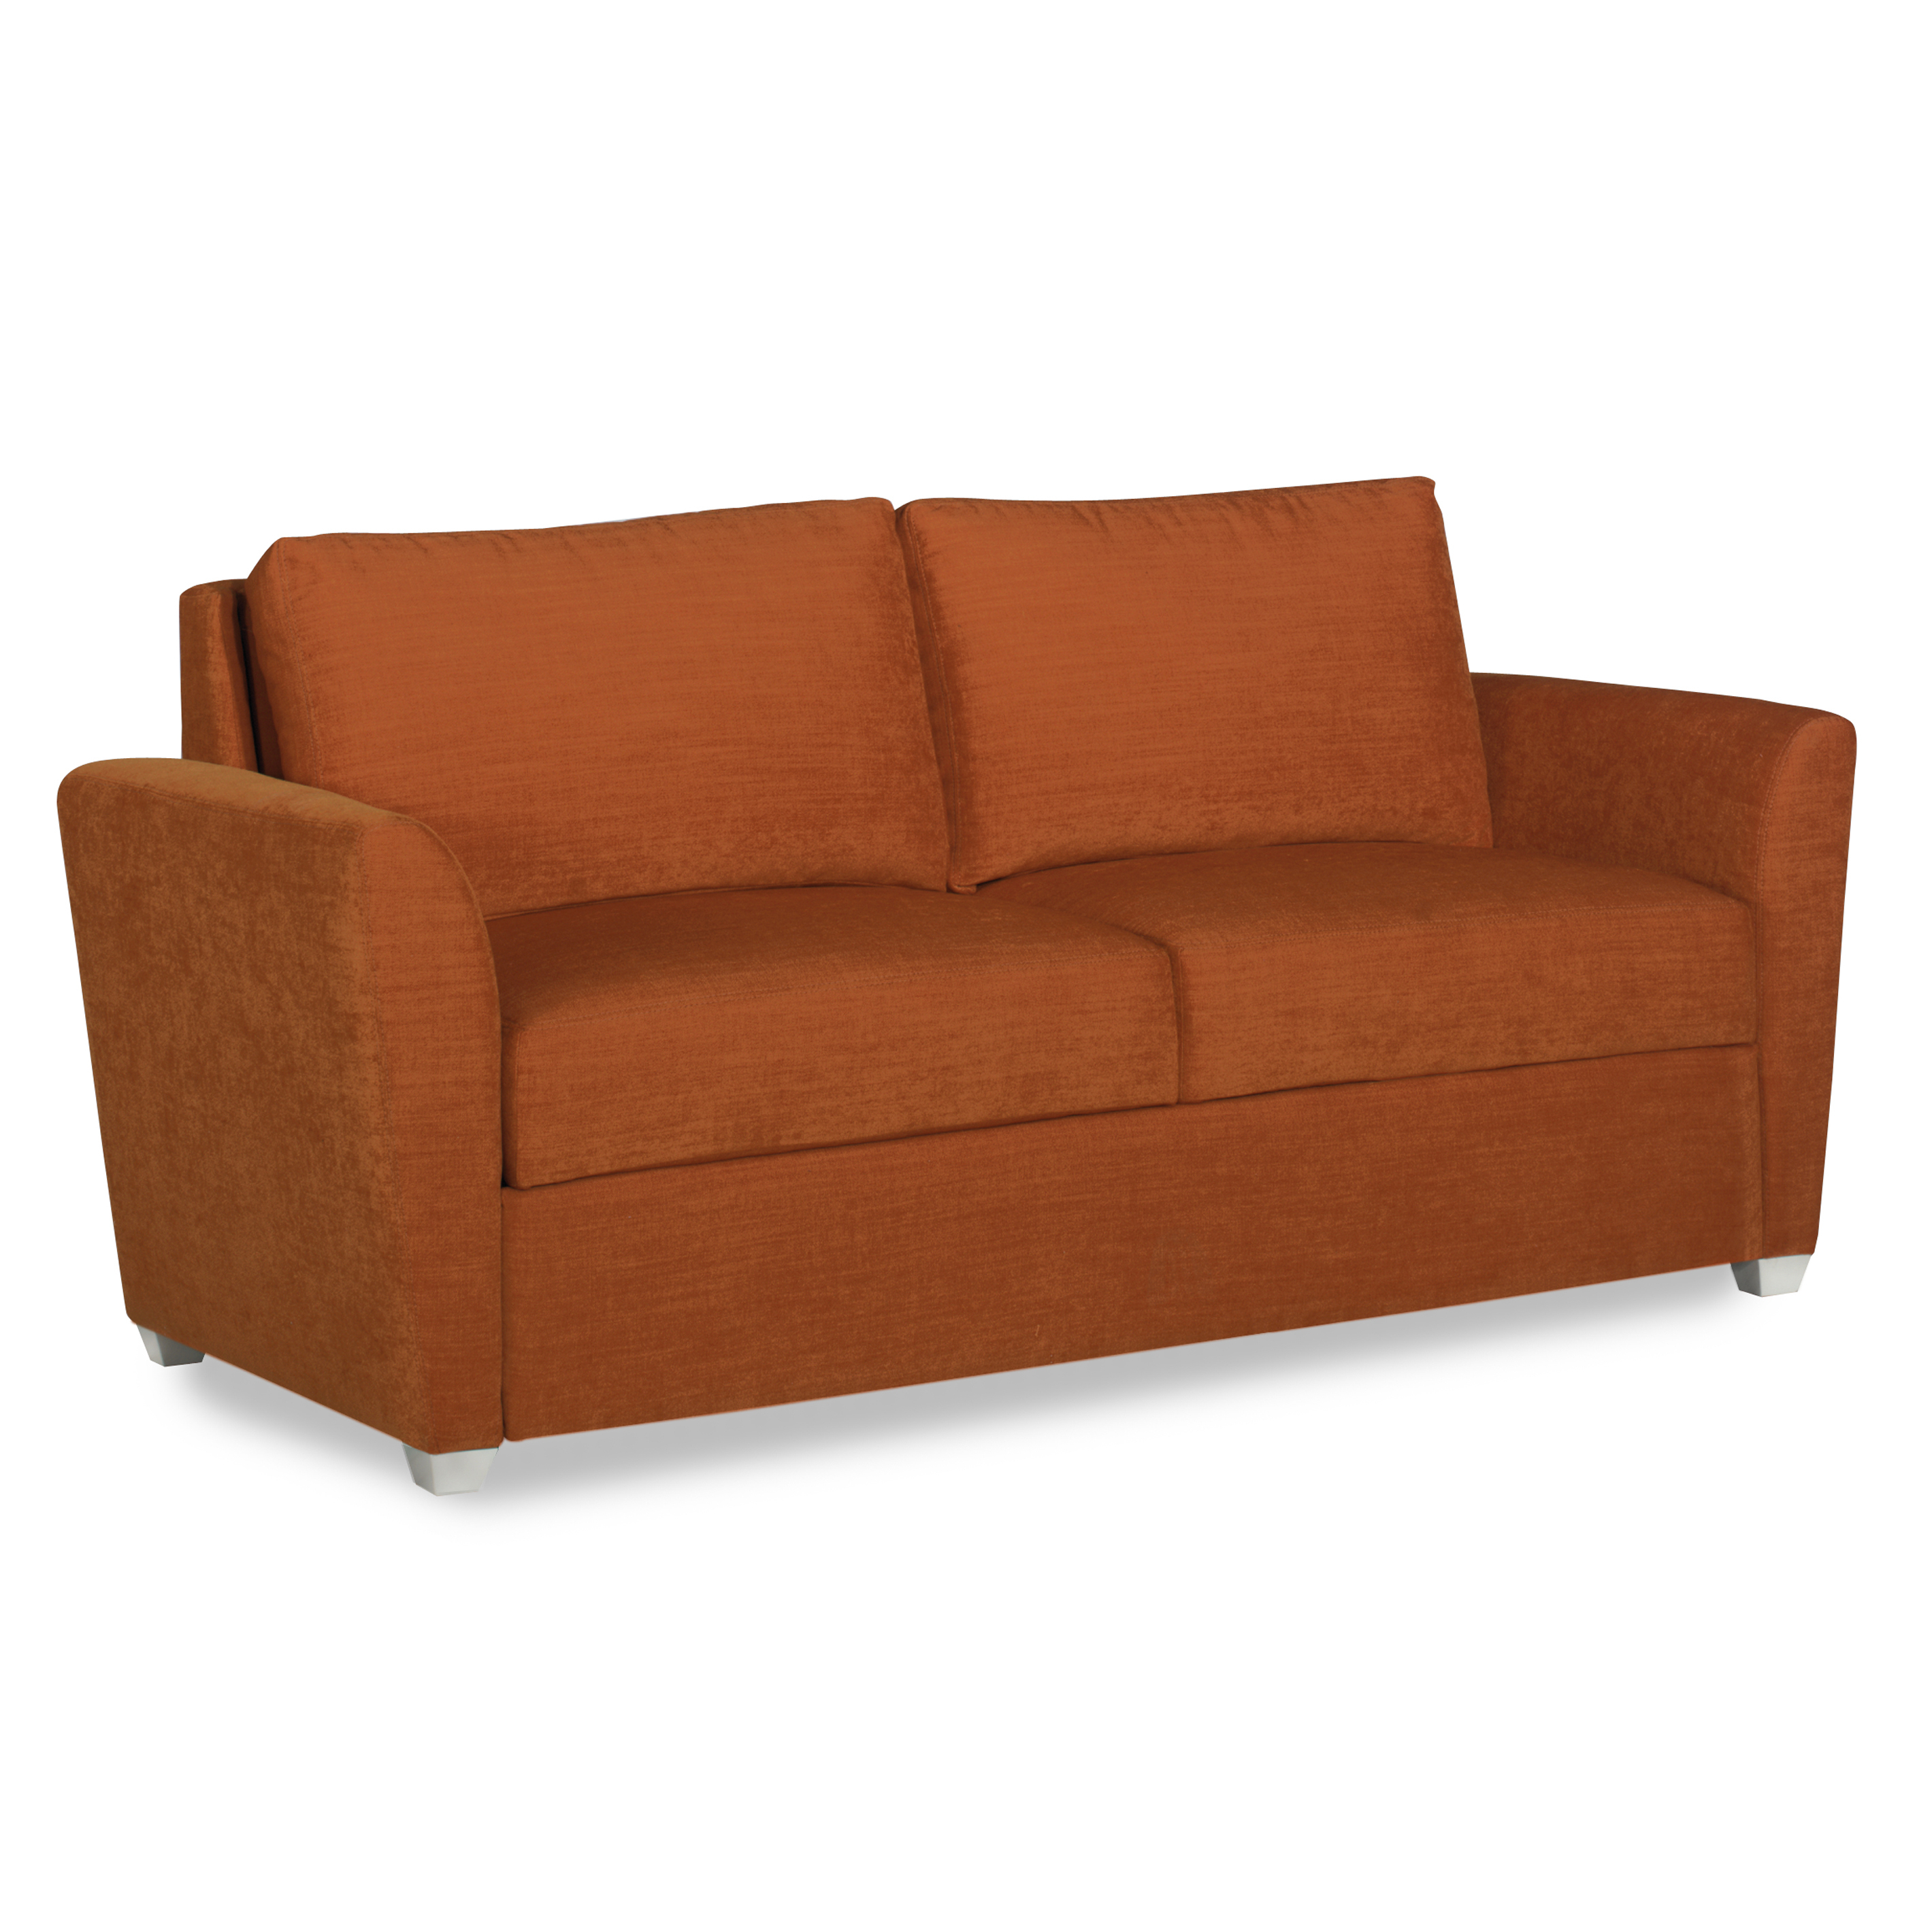 Cameron Sofa W/paragon Queen Sleeper – Lazar Intended For Cameron Sofa Chairs (View 10 of 25)